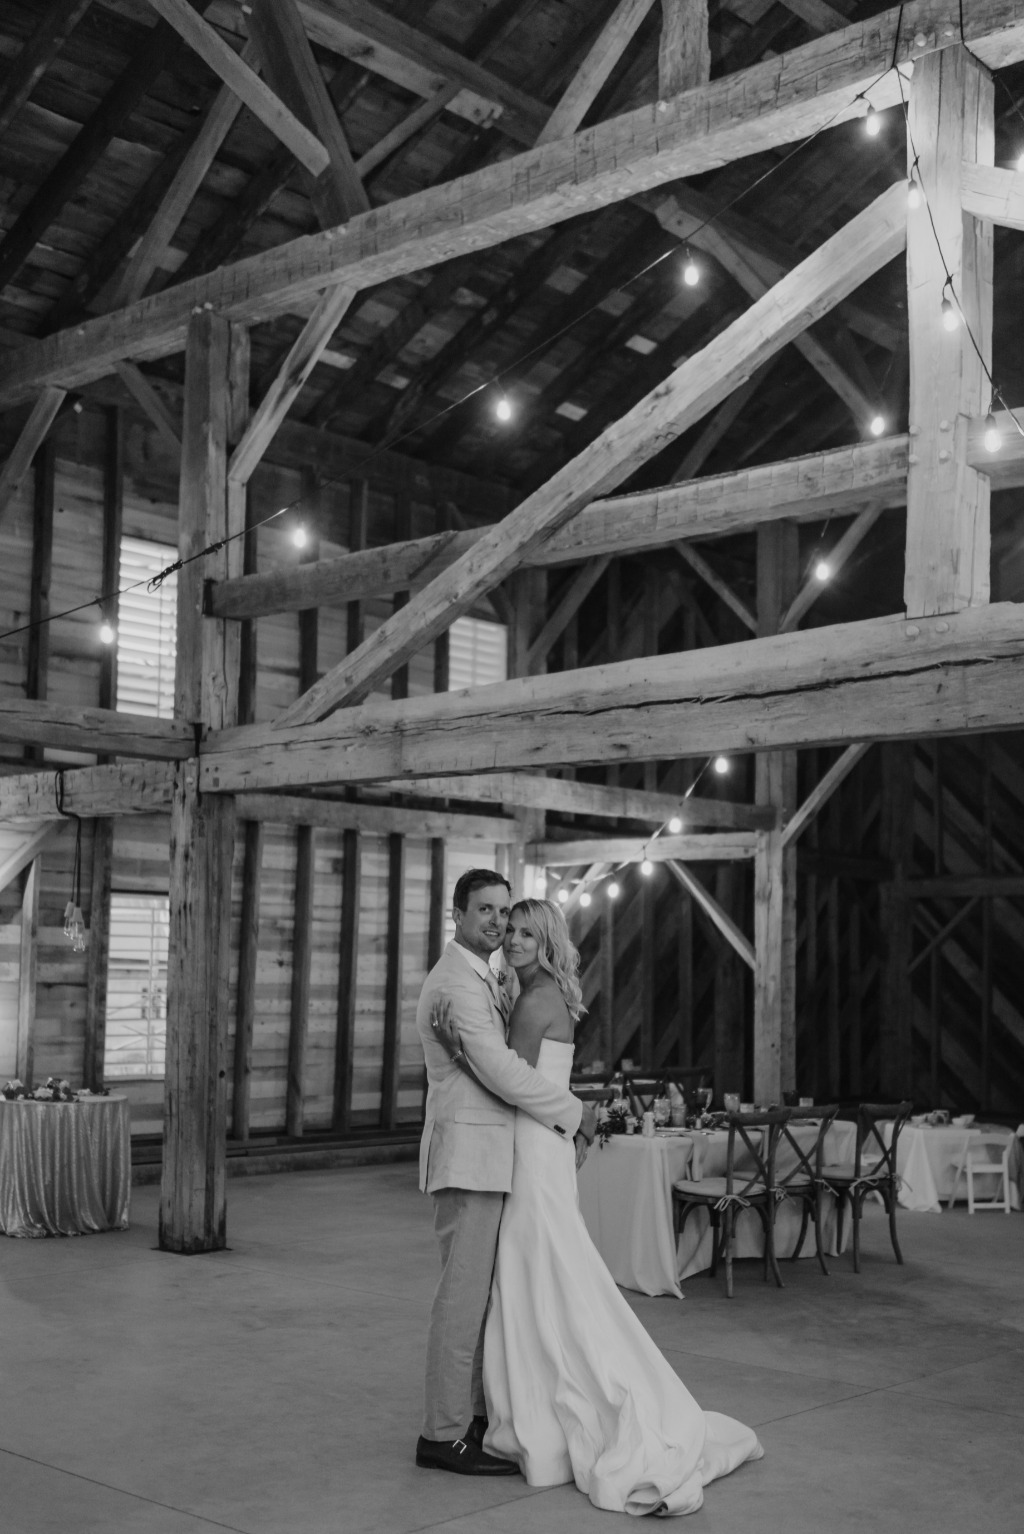 Come check out The Barn at Howard Creek Farm! Booking weddings for 2020!